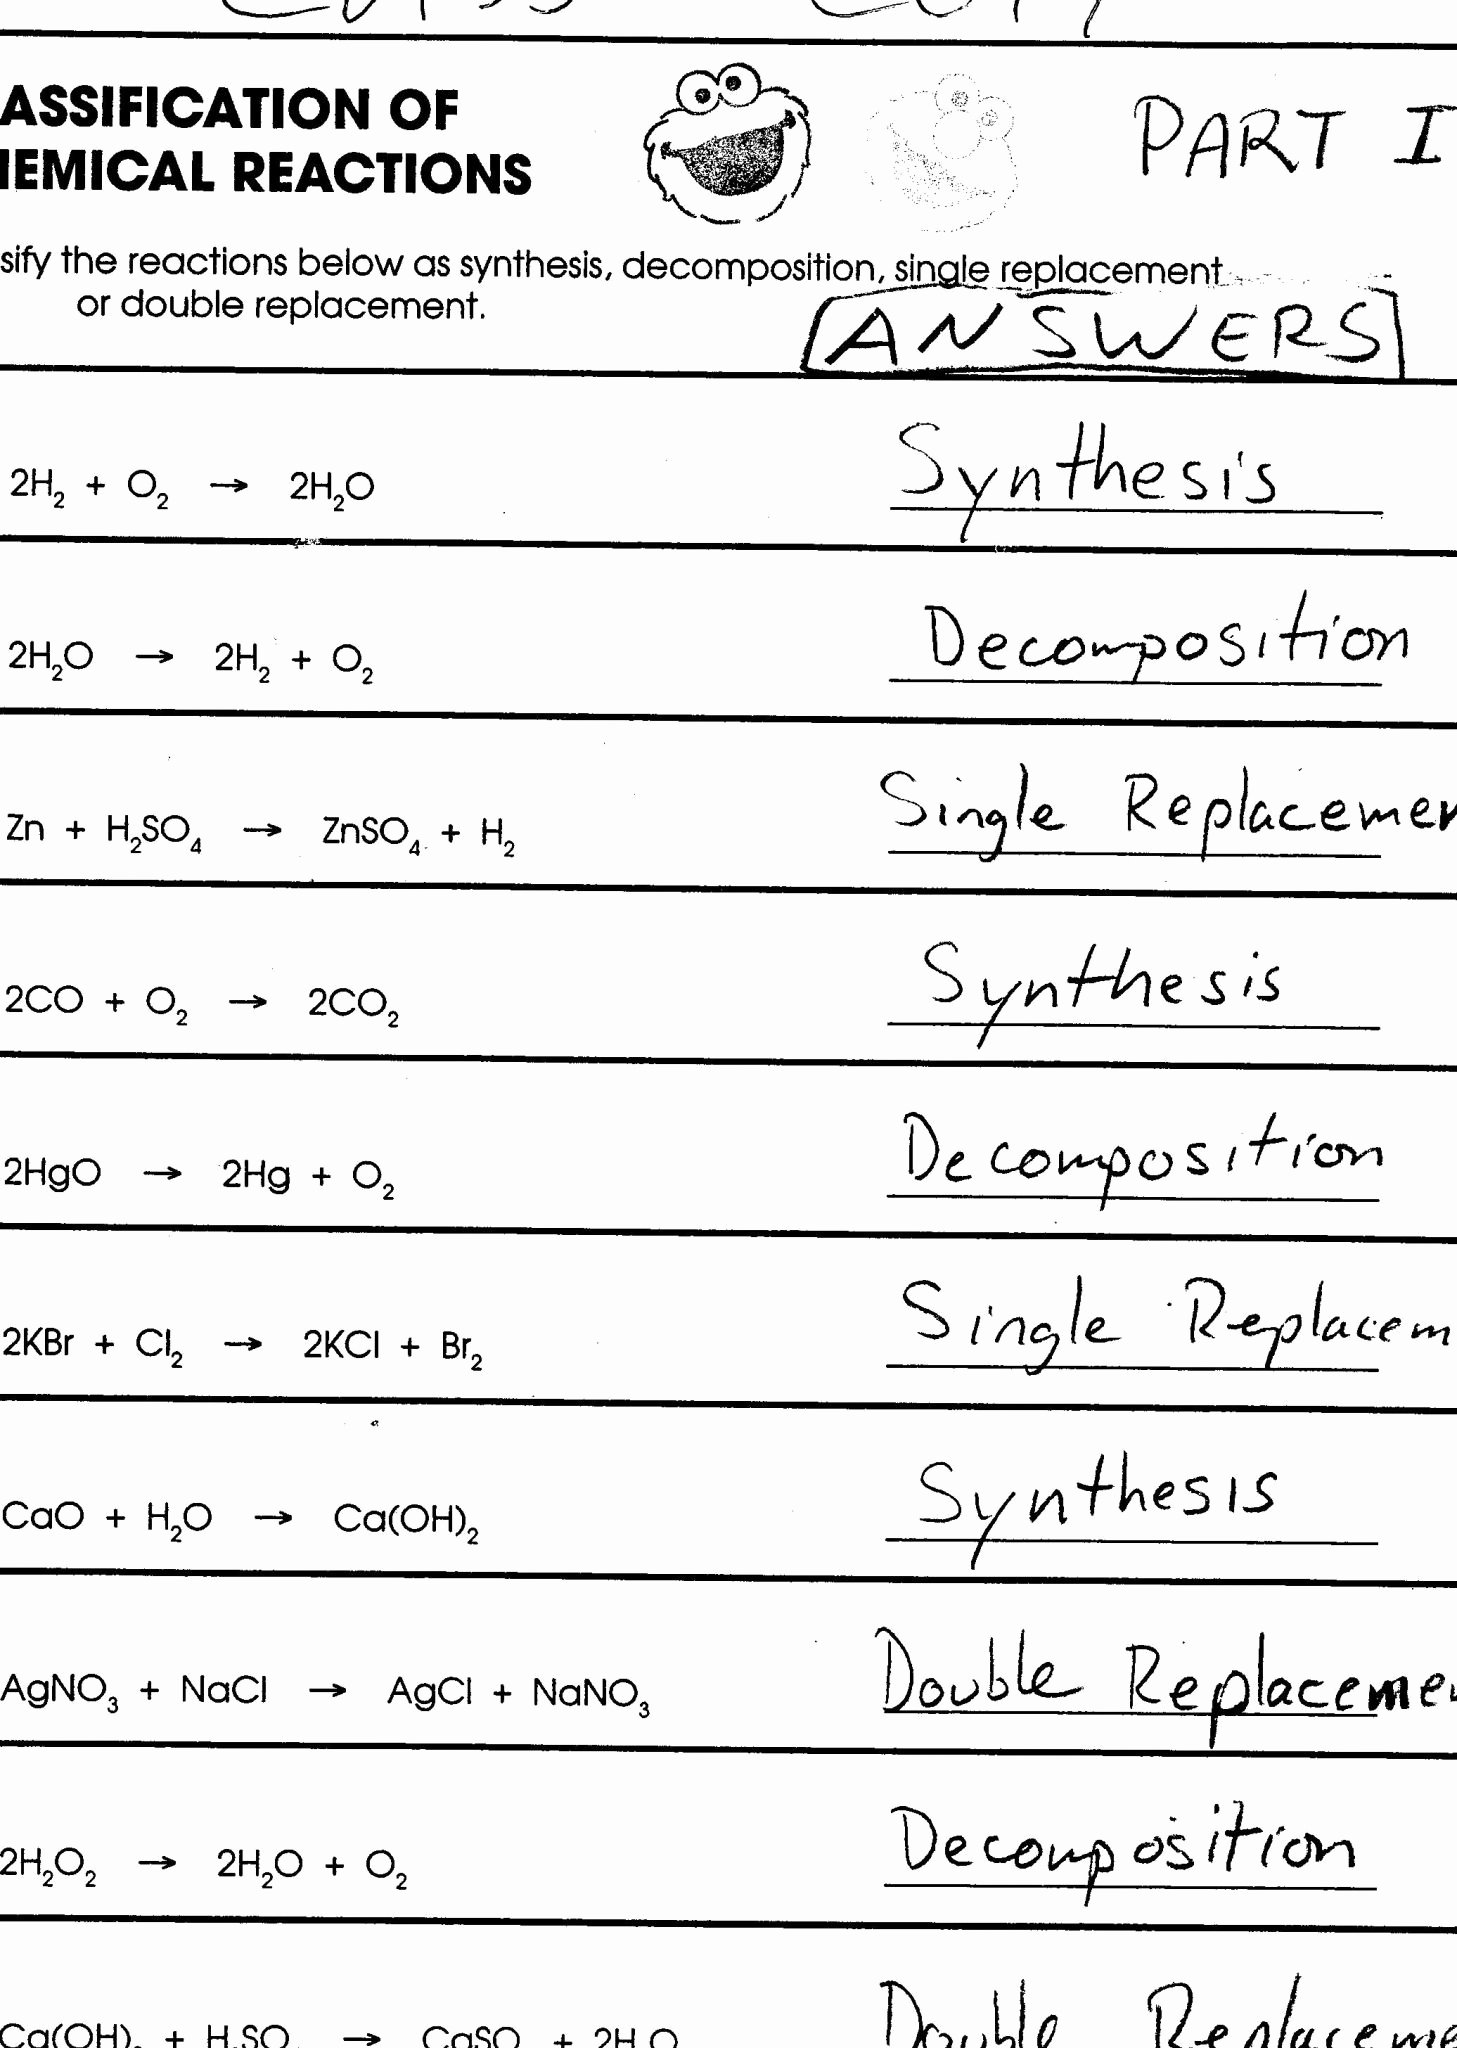 Classification Of Chemical Reactions Worksheet Lovely 33 Classification Chemical Reactions Worksheet Answers